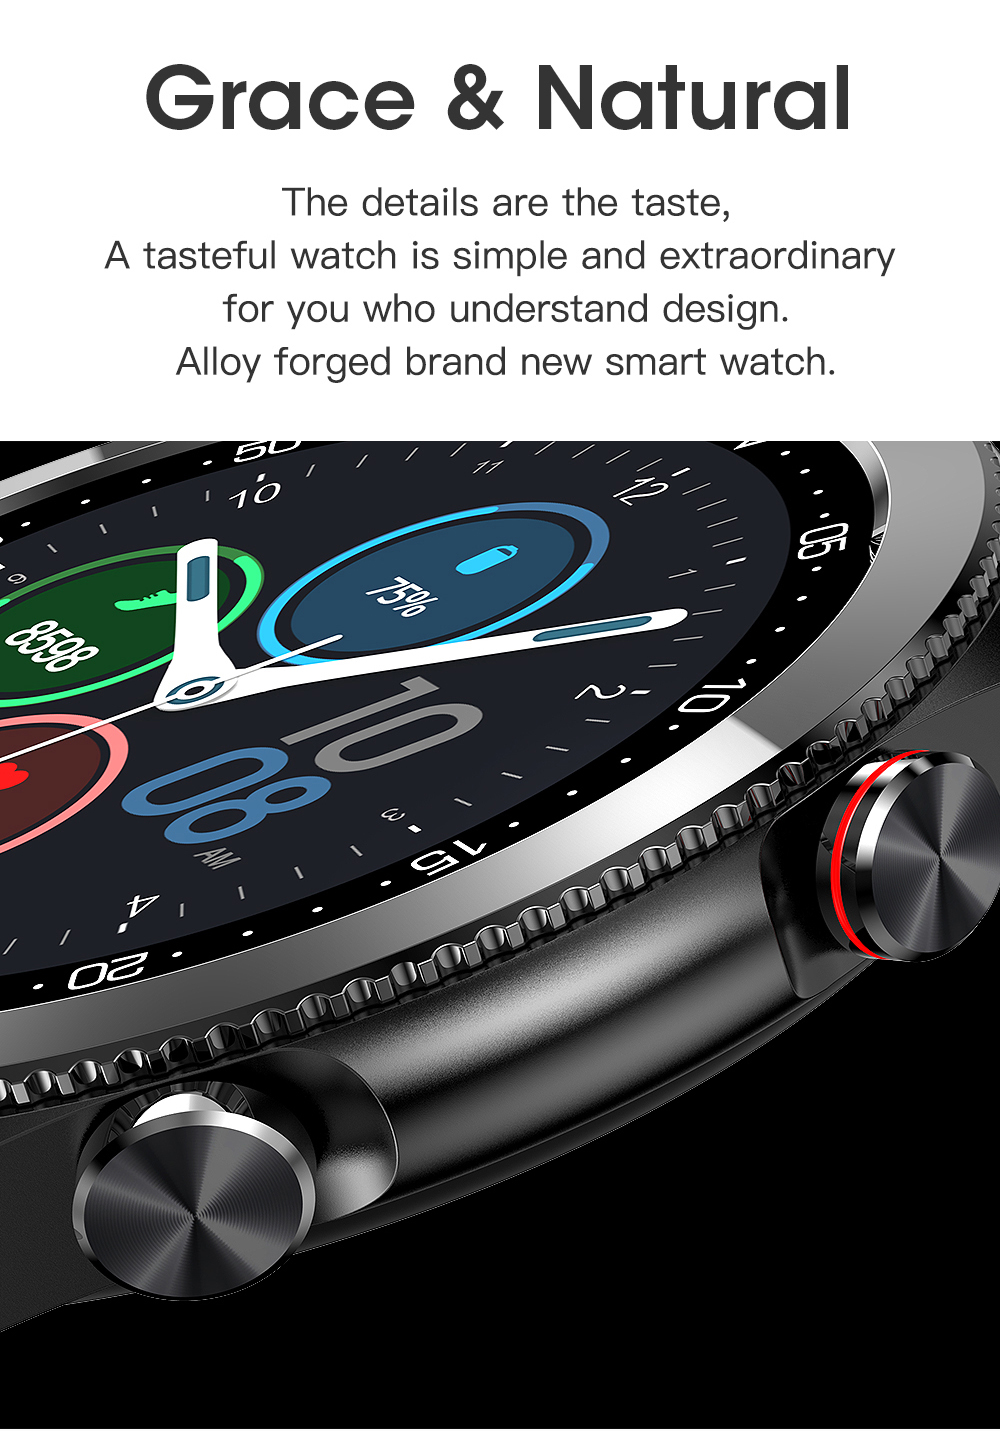 Hcd755cf52f37453bb3de7fc575f23b5bZ Timewolf Smart Watch Men 2021 IP68 Waterproof Android Full Touch Sports Smartwatch Bluetooth Call For Samsung Huawei Android IOS